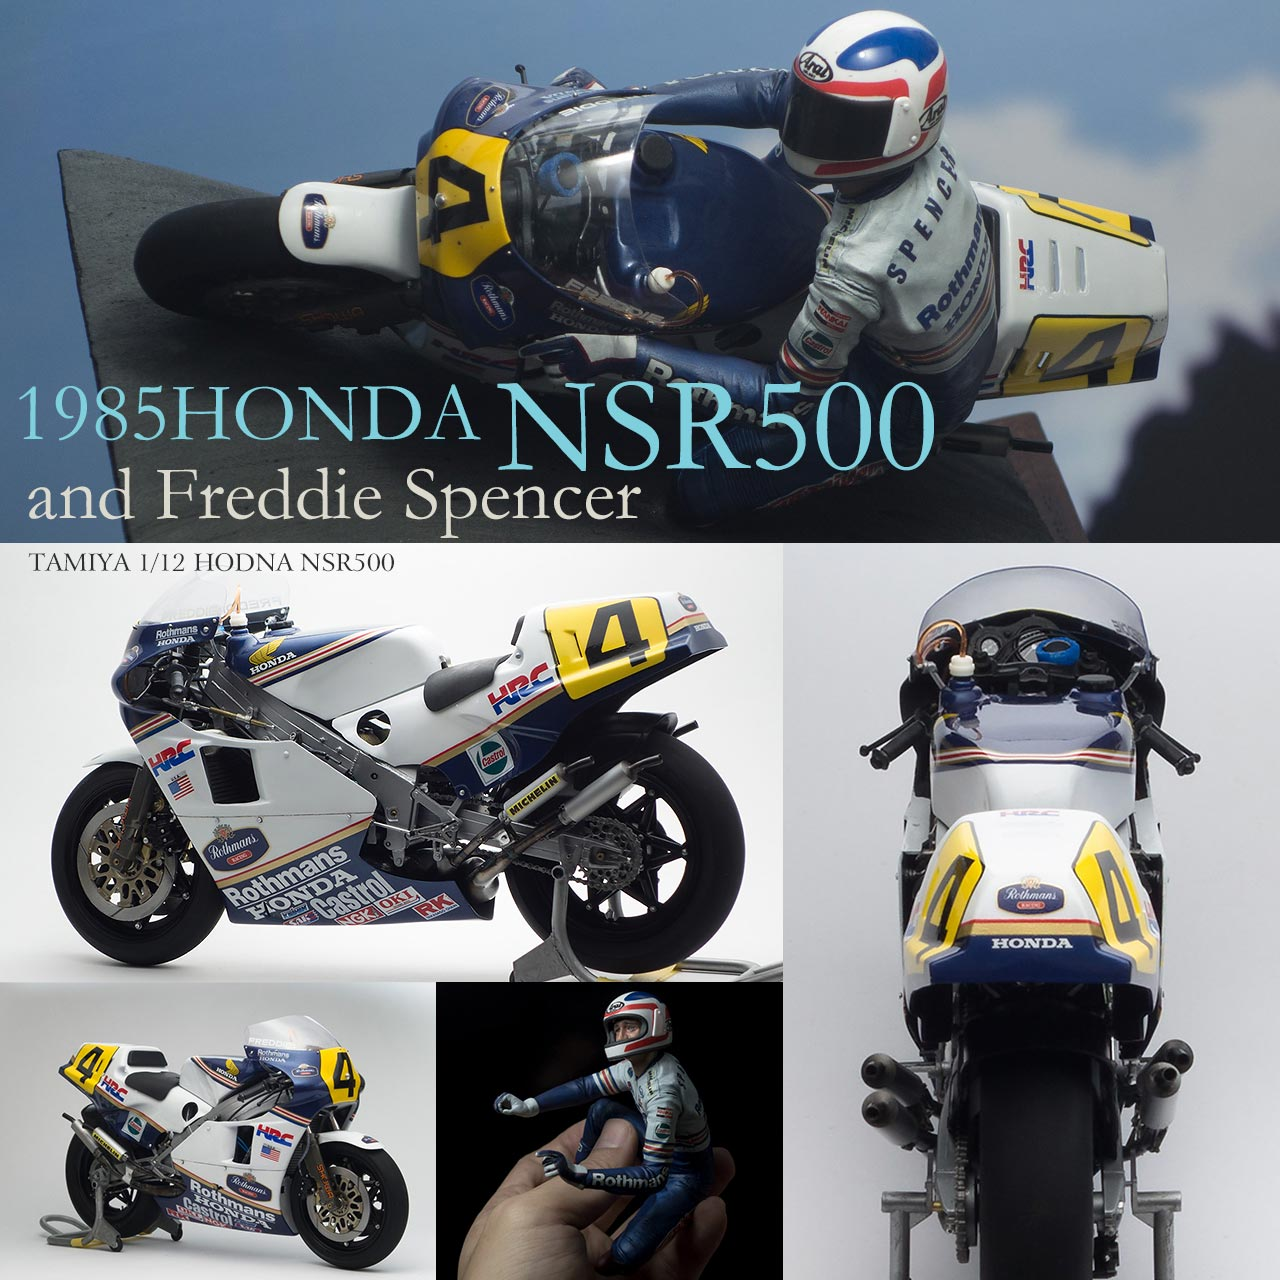 1/12 TAMIYA HONDA NSR500[Rothmans HONDA 1985] and Freddie Spencer